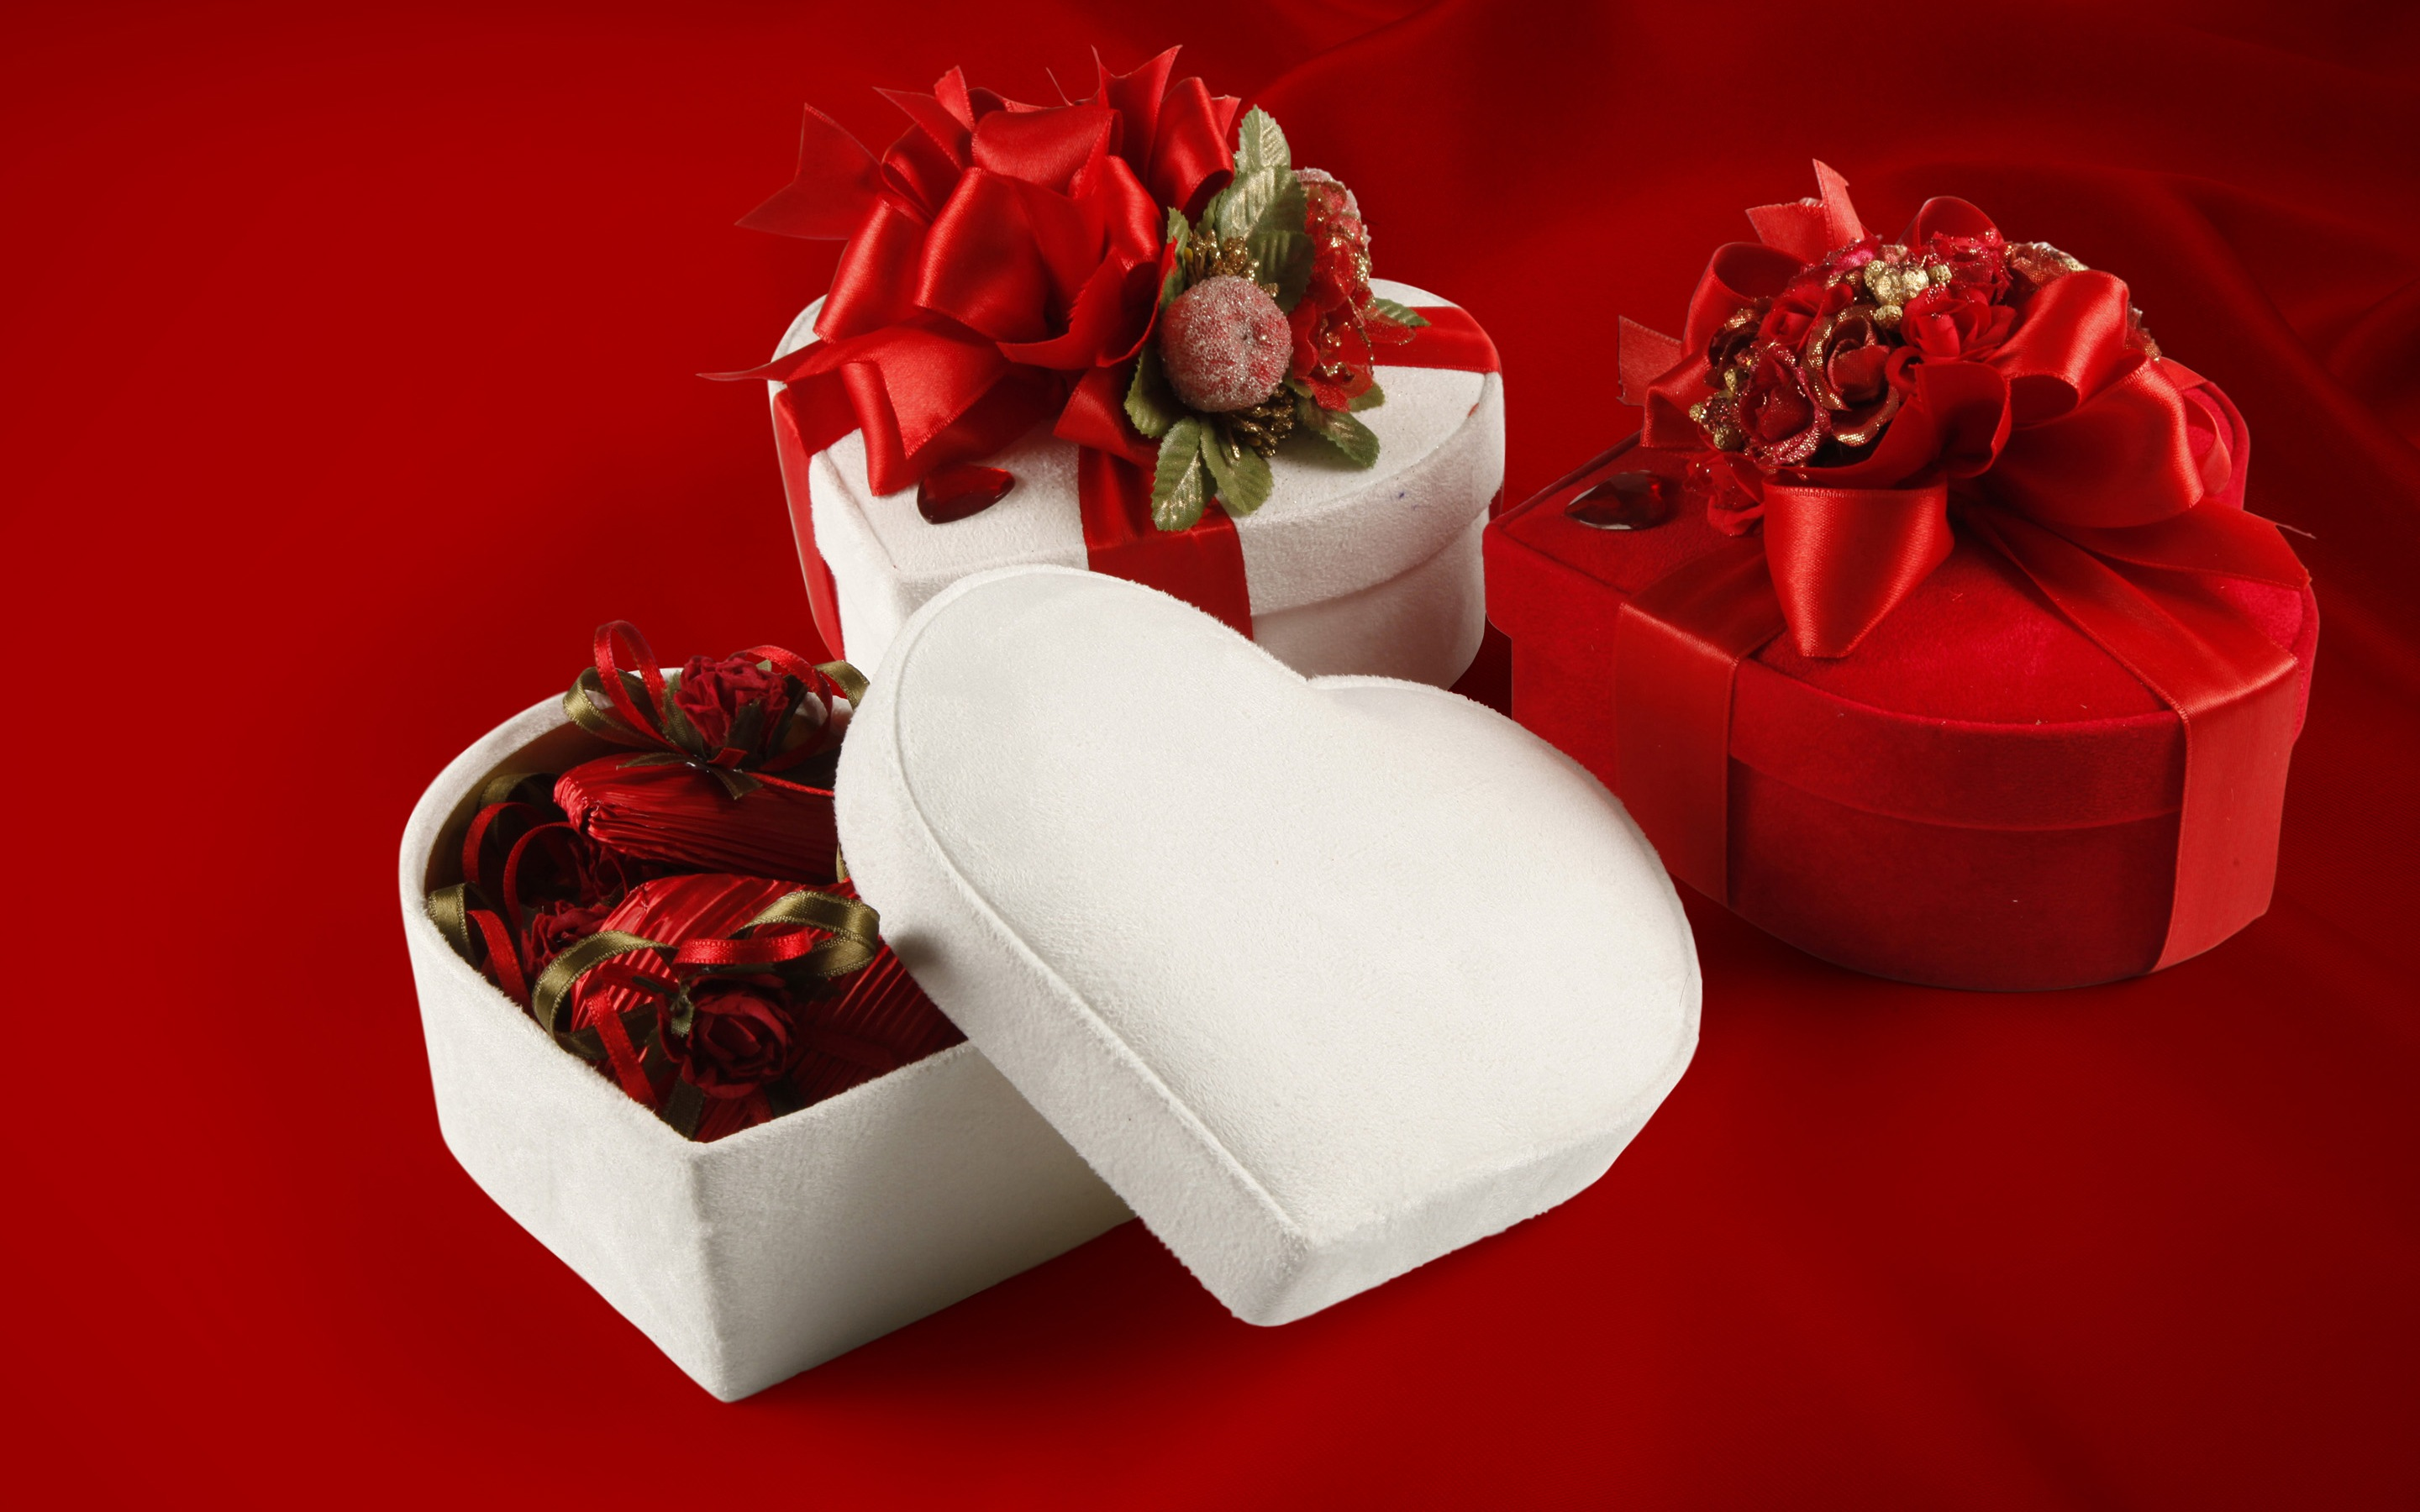 Gifts For Him On Valentine Day